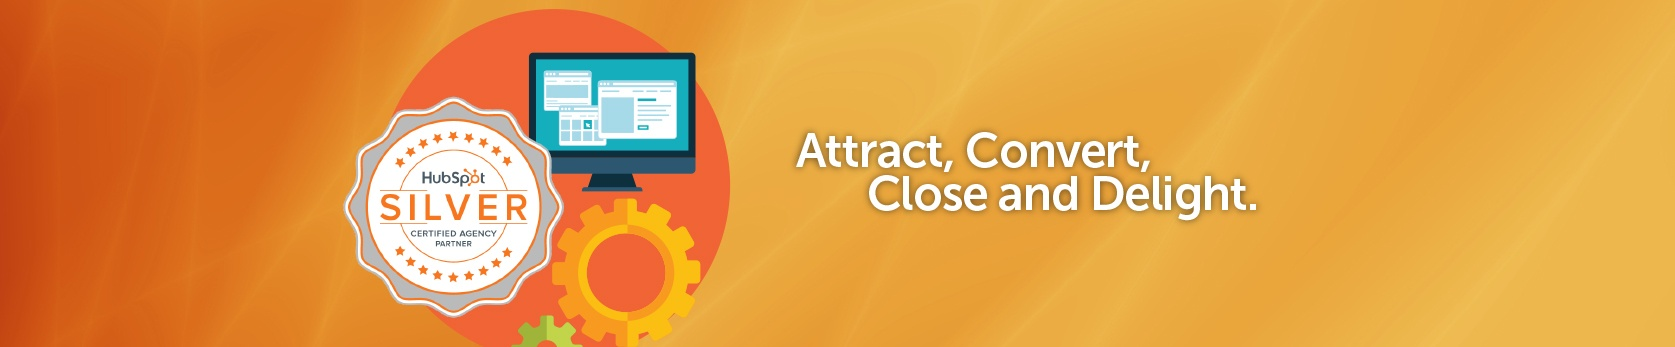 Attract, Convert, Close and Delight.